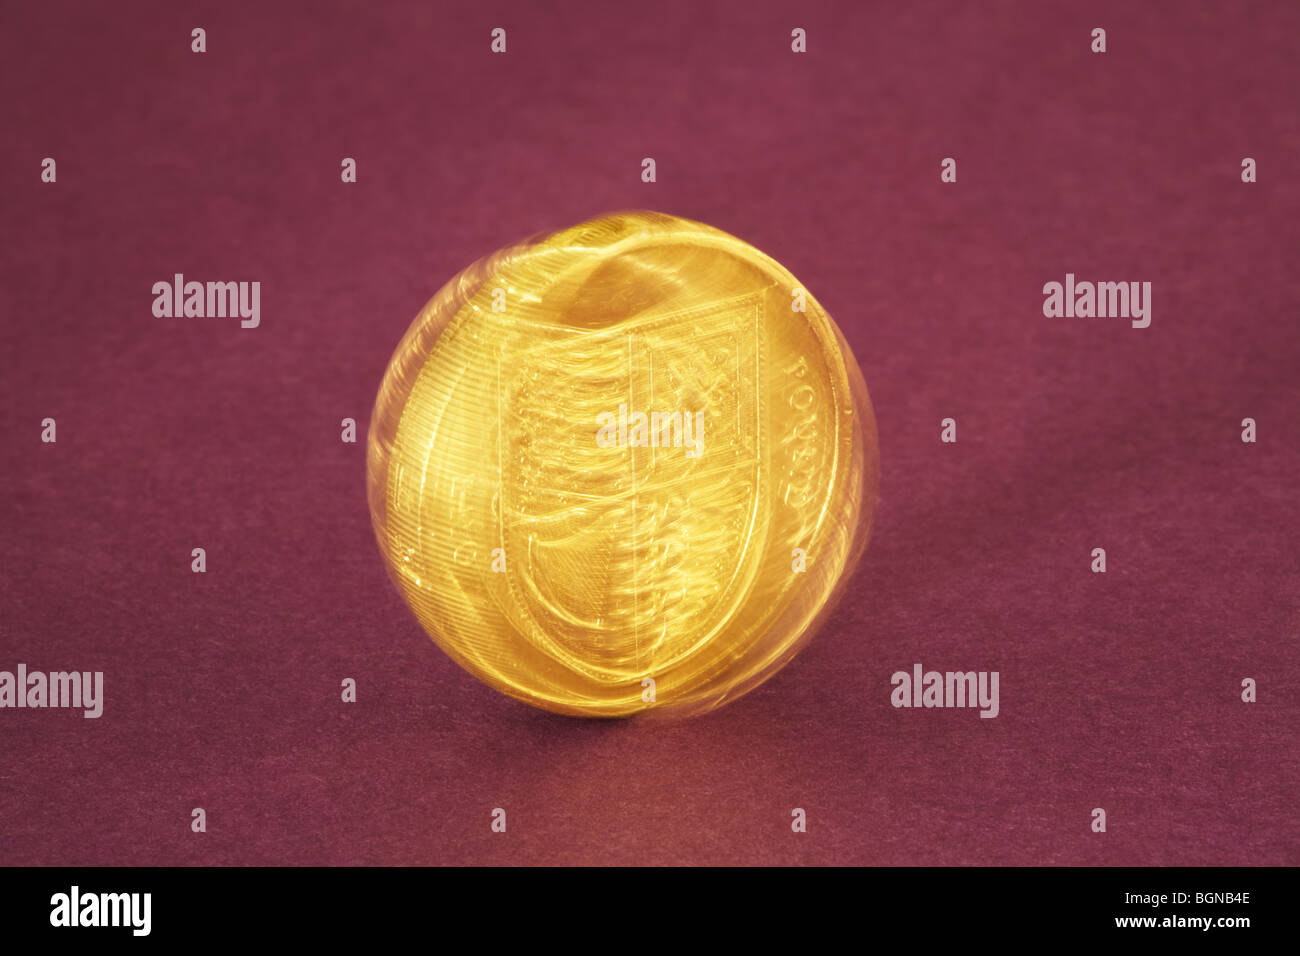 Spinning One Pound Coin - Stock Image